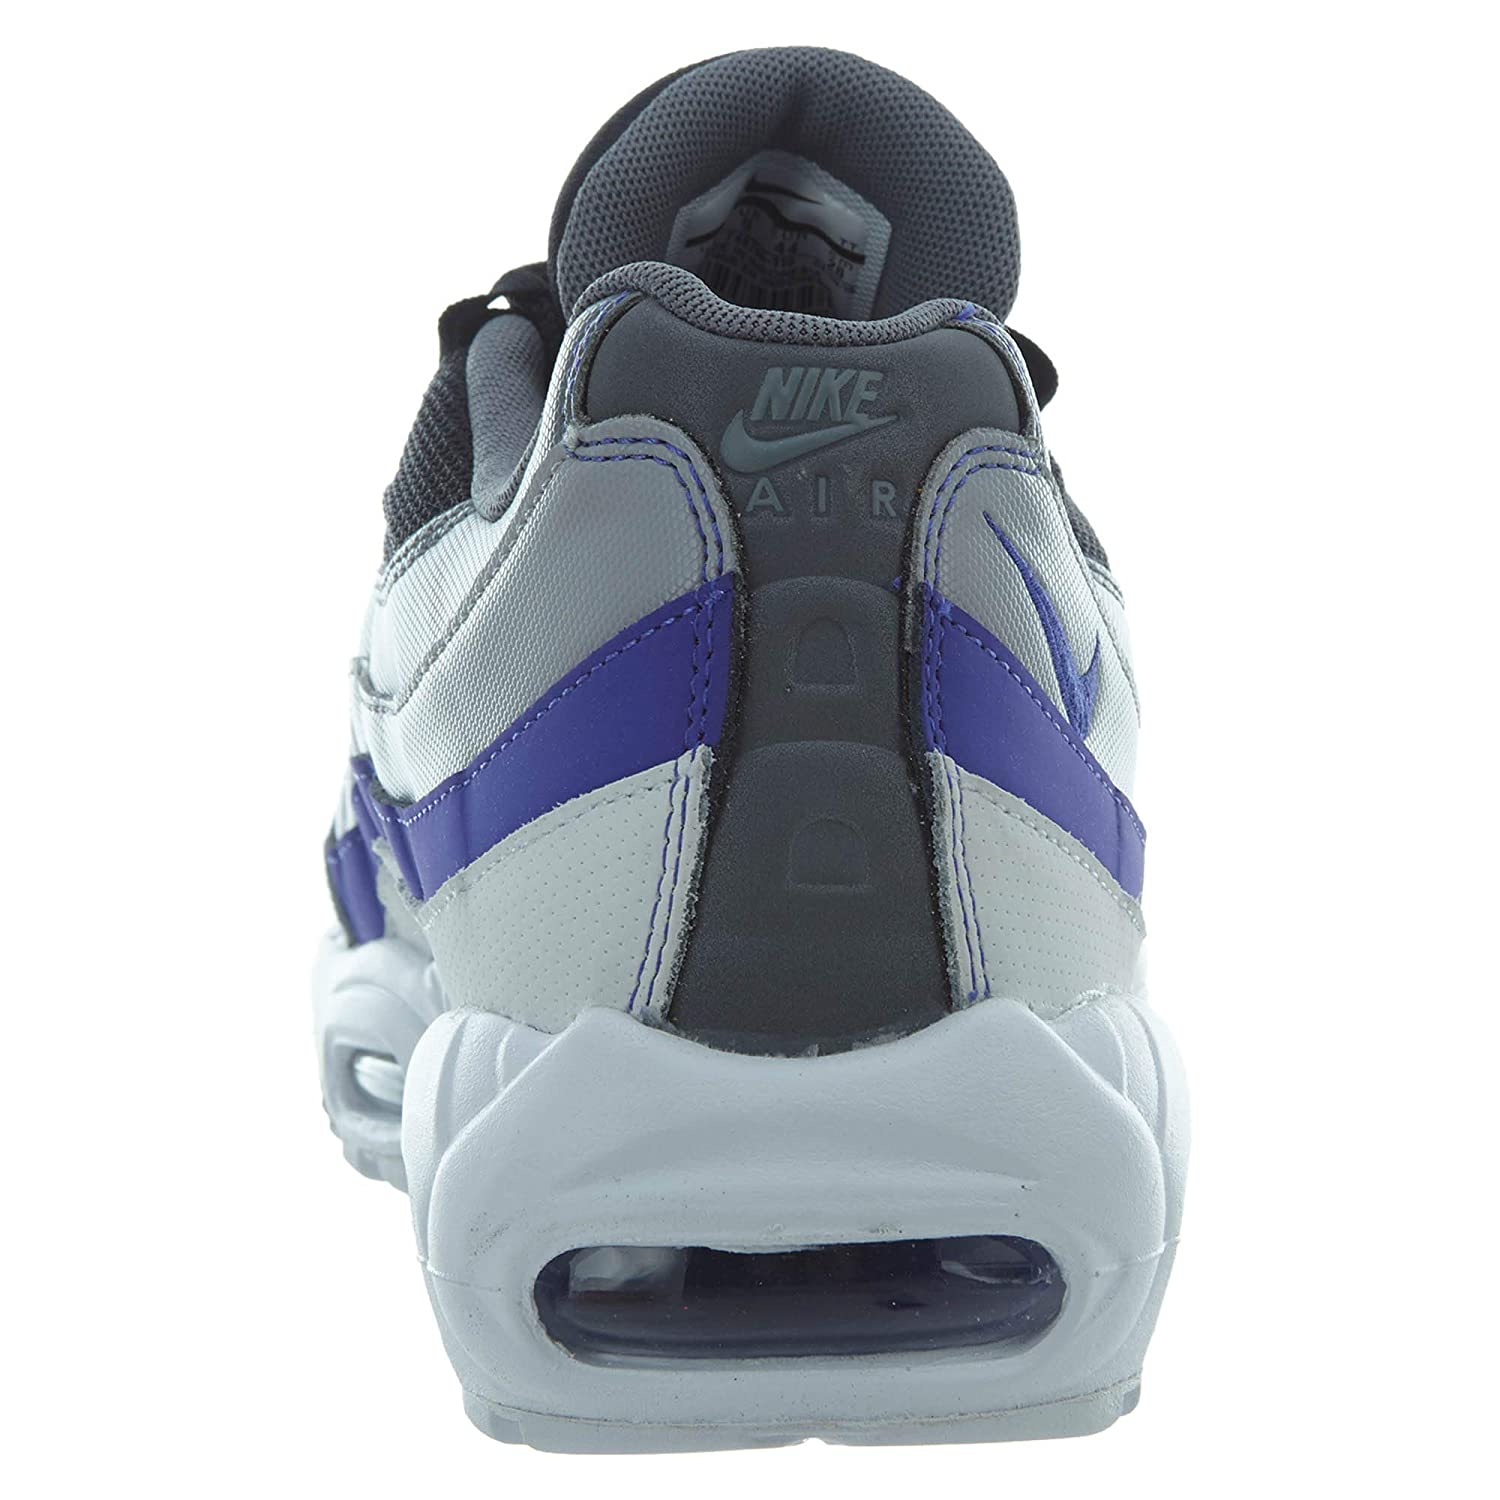 best service d3351 5984a Nike Men s Air Max 95 Essential Low-Top Sneakers  Amazon.co.uk  Shoes   Bags